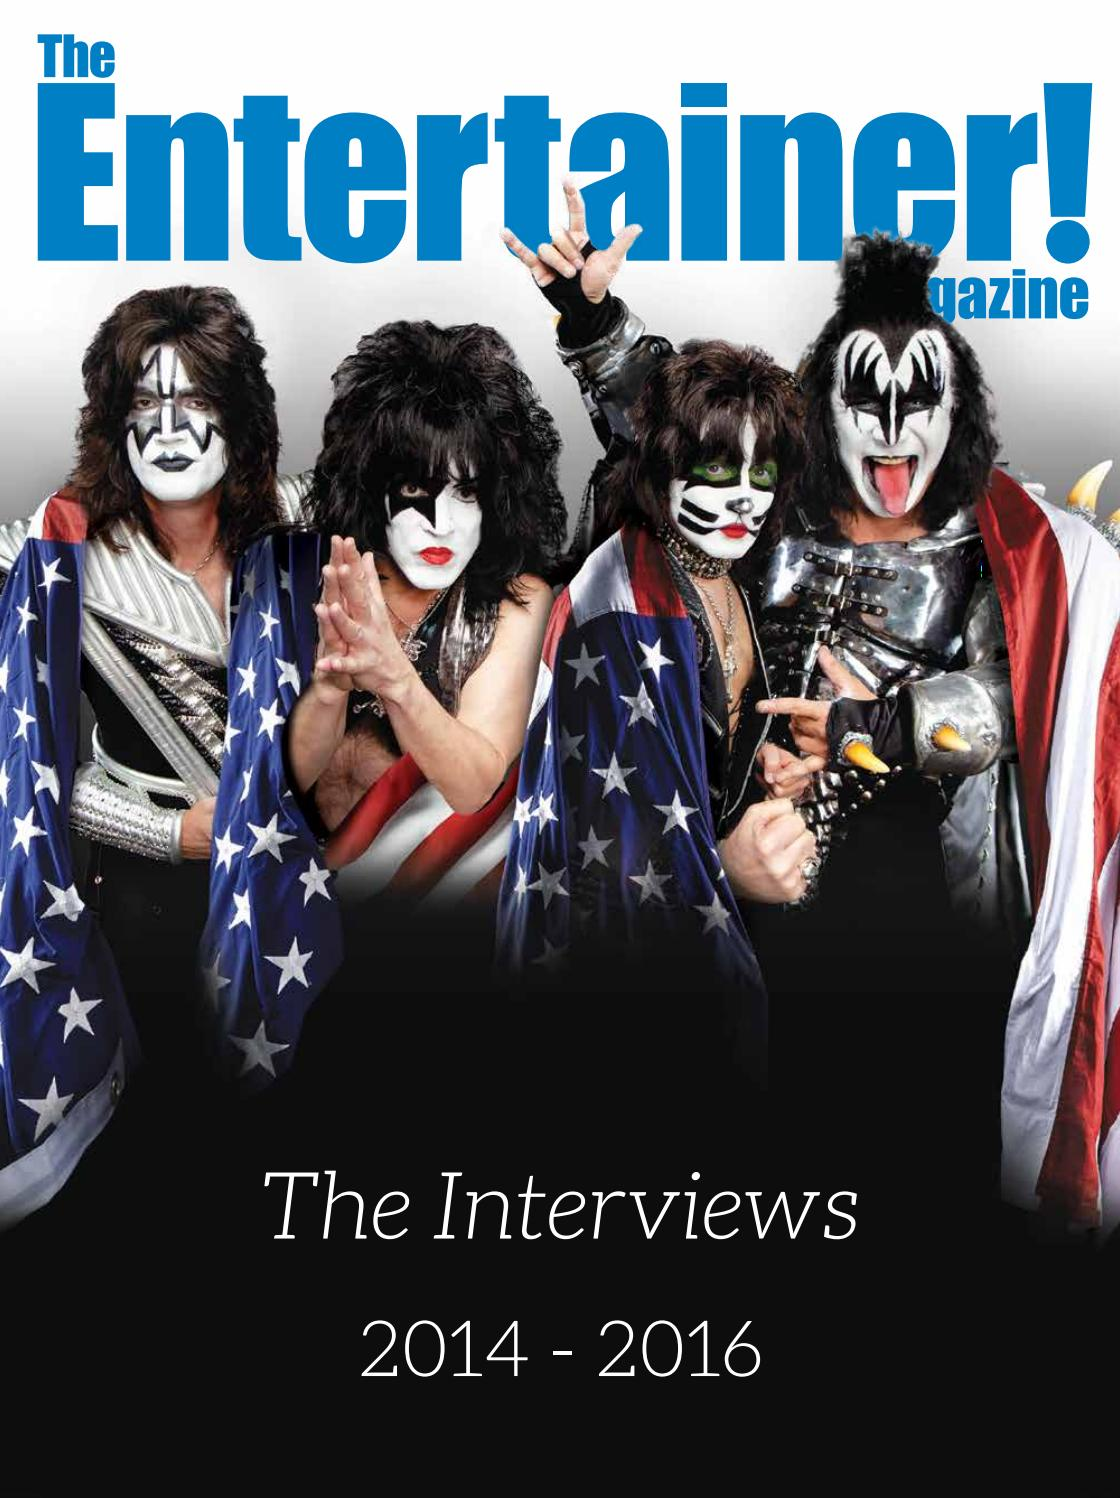 The Entertainer! Special Edition - The Interviews 2014-2016 by Times Media  Group - issuu